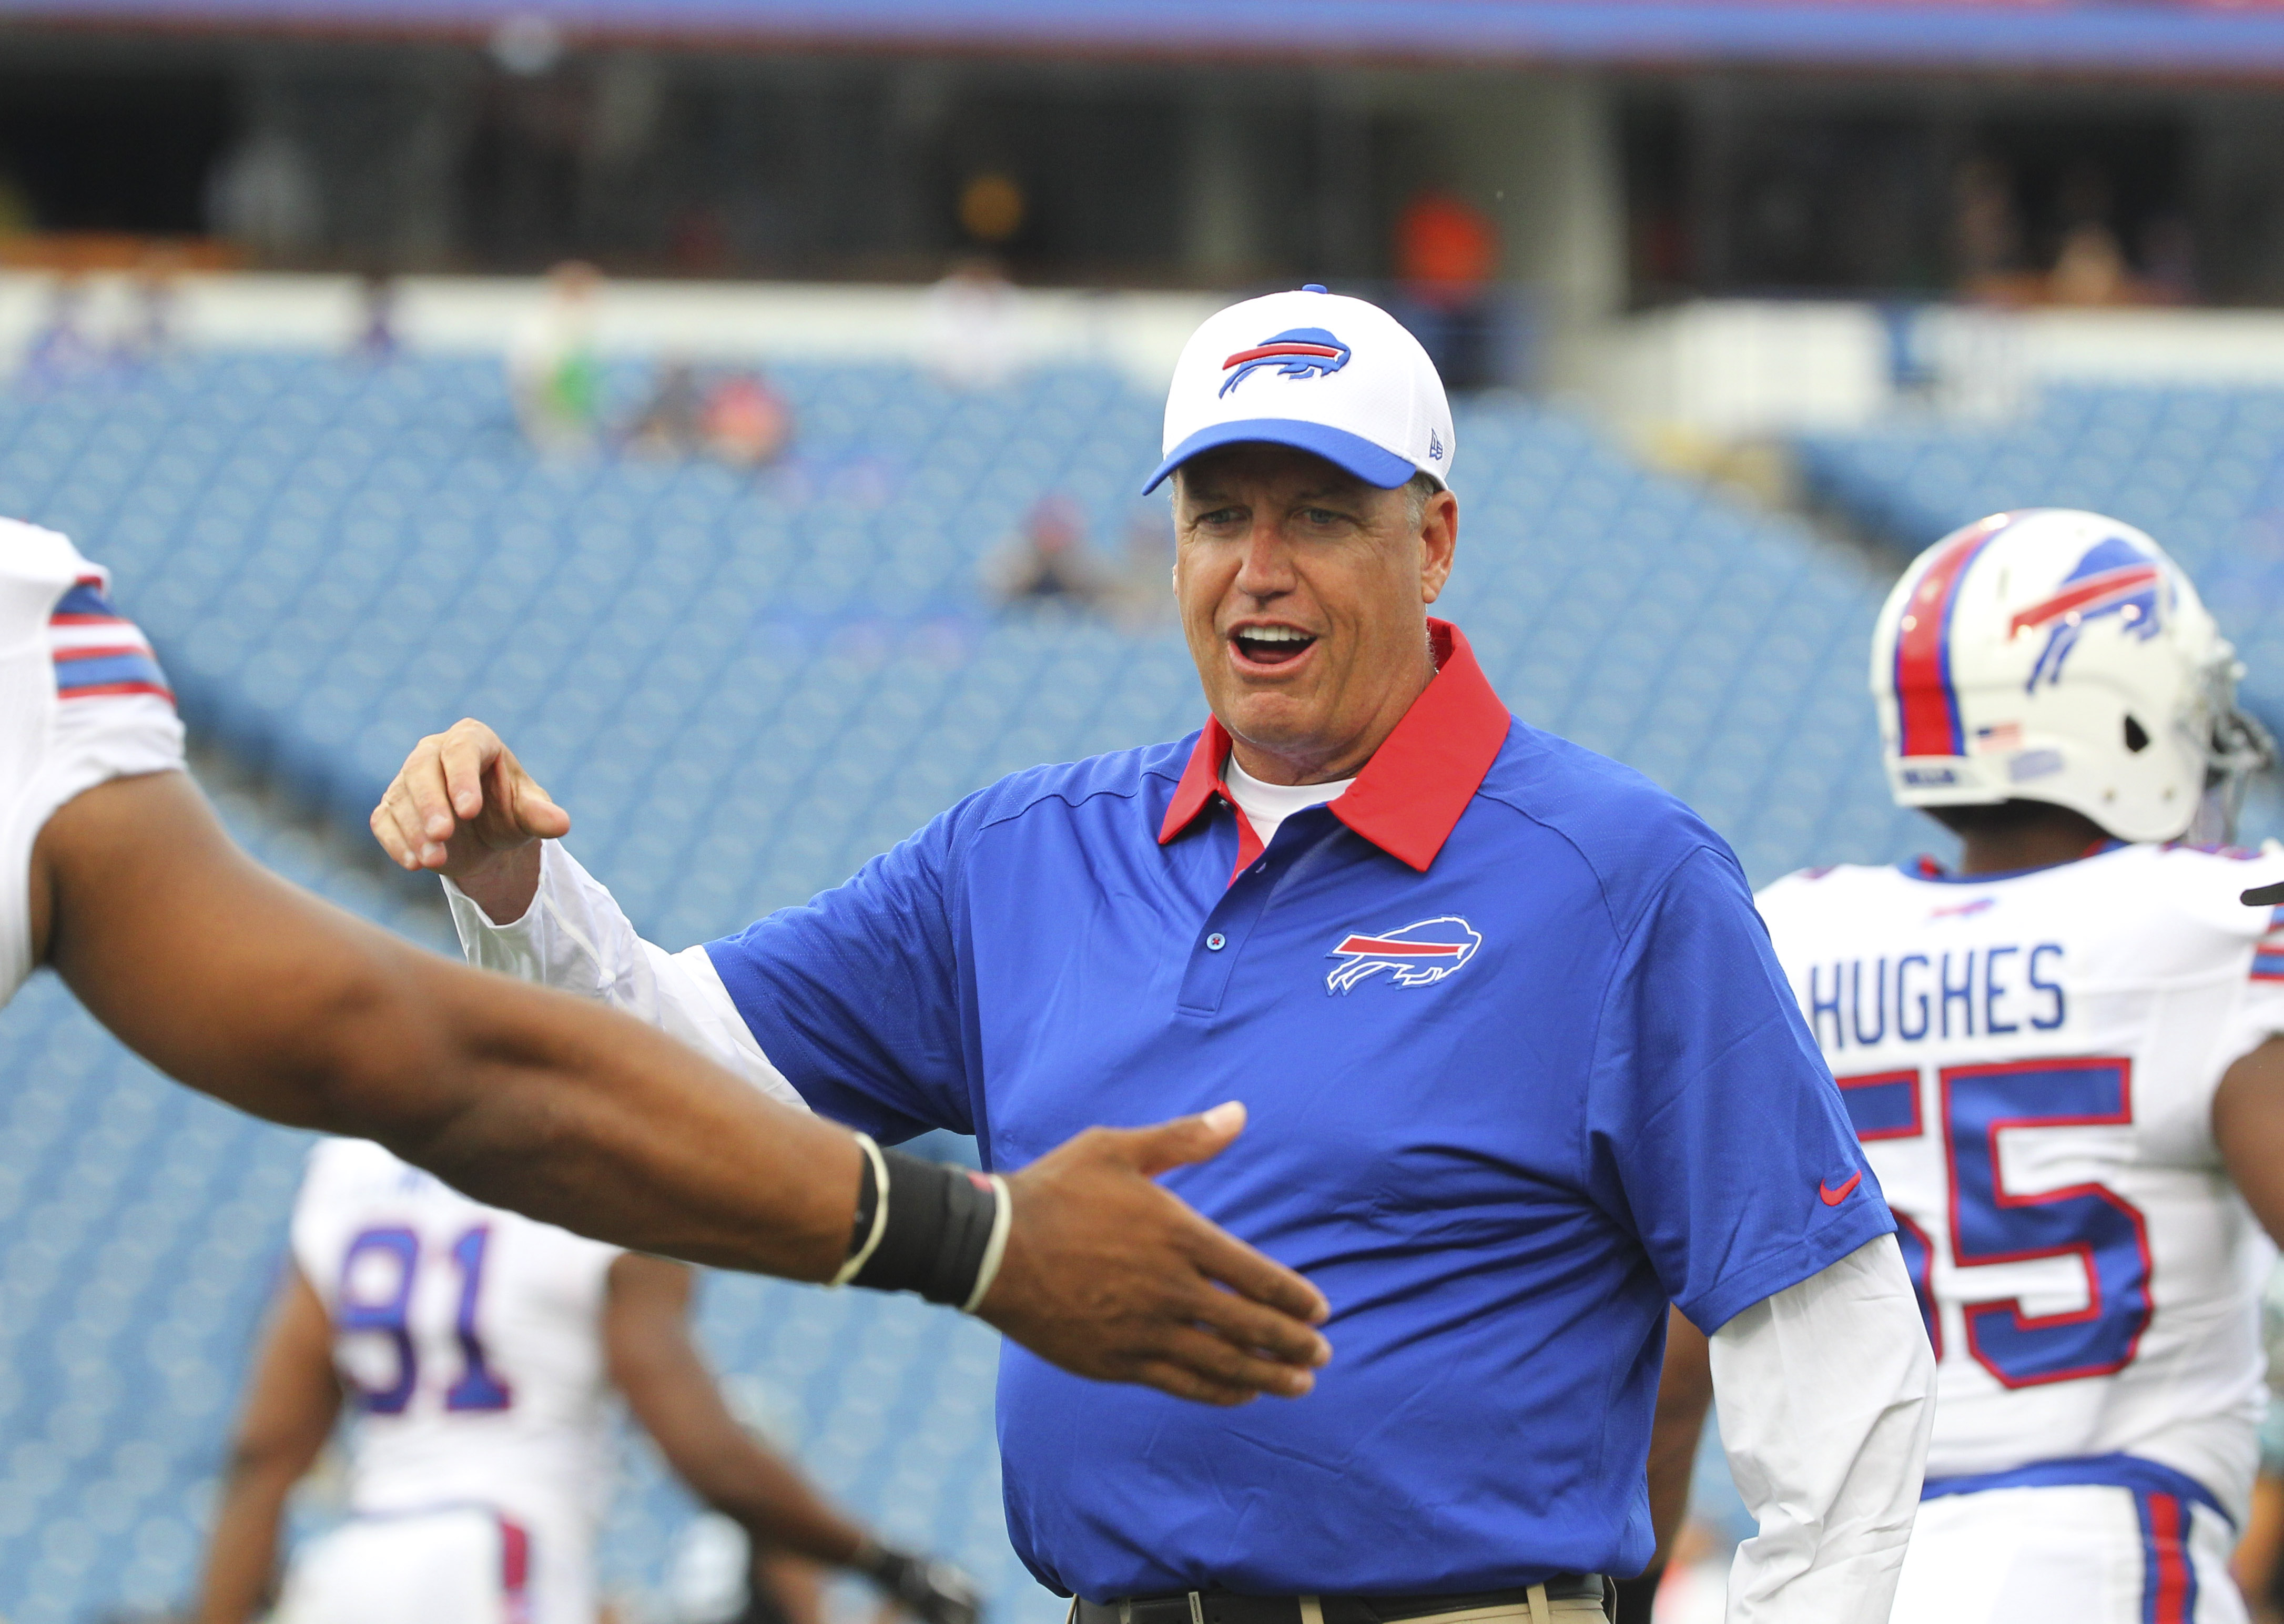 FILE - In this Aug. 14, 2015, file photo, Buffalo Bills coach Rex Ryan talks to players before an NFL preseason football game against the Carolina Panthers in Orchard Park, N.Y. Ryan has re-energized a franchise that has the longest playoff drought at 15